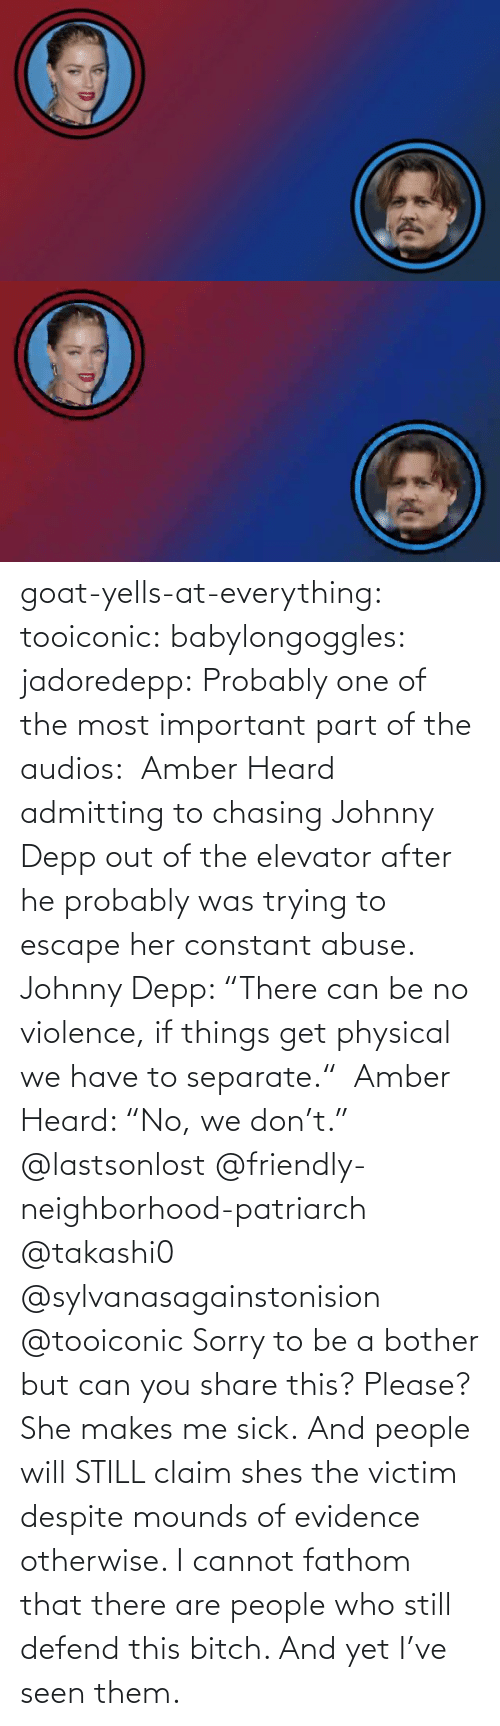 "still: goat-yells-at-everything:  tooiconic:  babylongoggles:  jadoredepp:  Probably one of the most important part of the audios:  Amber Heard admitting to chasing Johnny Depp out of the elevator after he probably was trying to escape her constant abuse.  Johnny Depp: ""There can be no violence, if things get physical we have to separate.""  Amber Heard: ""No, we don't.""  @lastsonlost @friendly-neighborhood-patriarch @takashi0 @sylvanasagainstonision @tooiconic Sorry to be a bother but can you share this? Please?   She makes me sick.   And people will STILL claim shes the victim despite mounds of evidence otherwise.    I cannot fathom that there are people who still defend this bitch. And yet I've seen them."